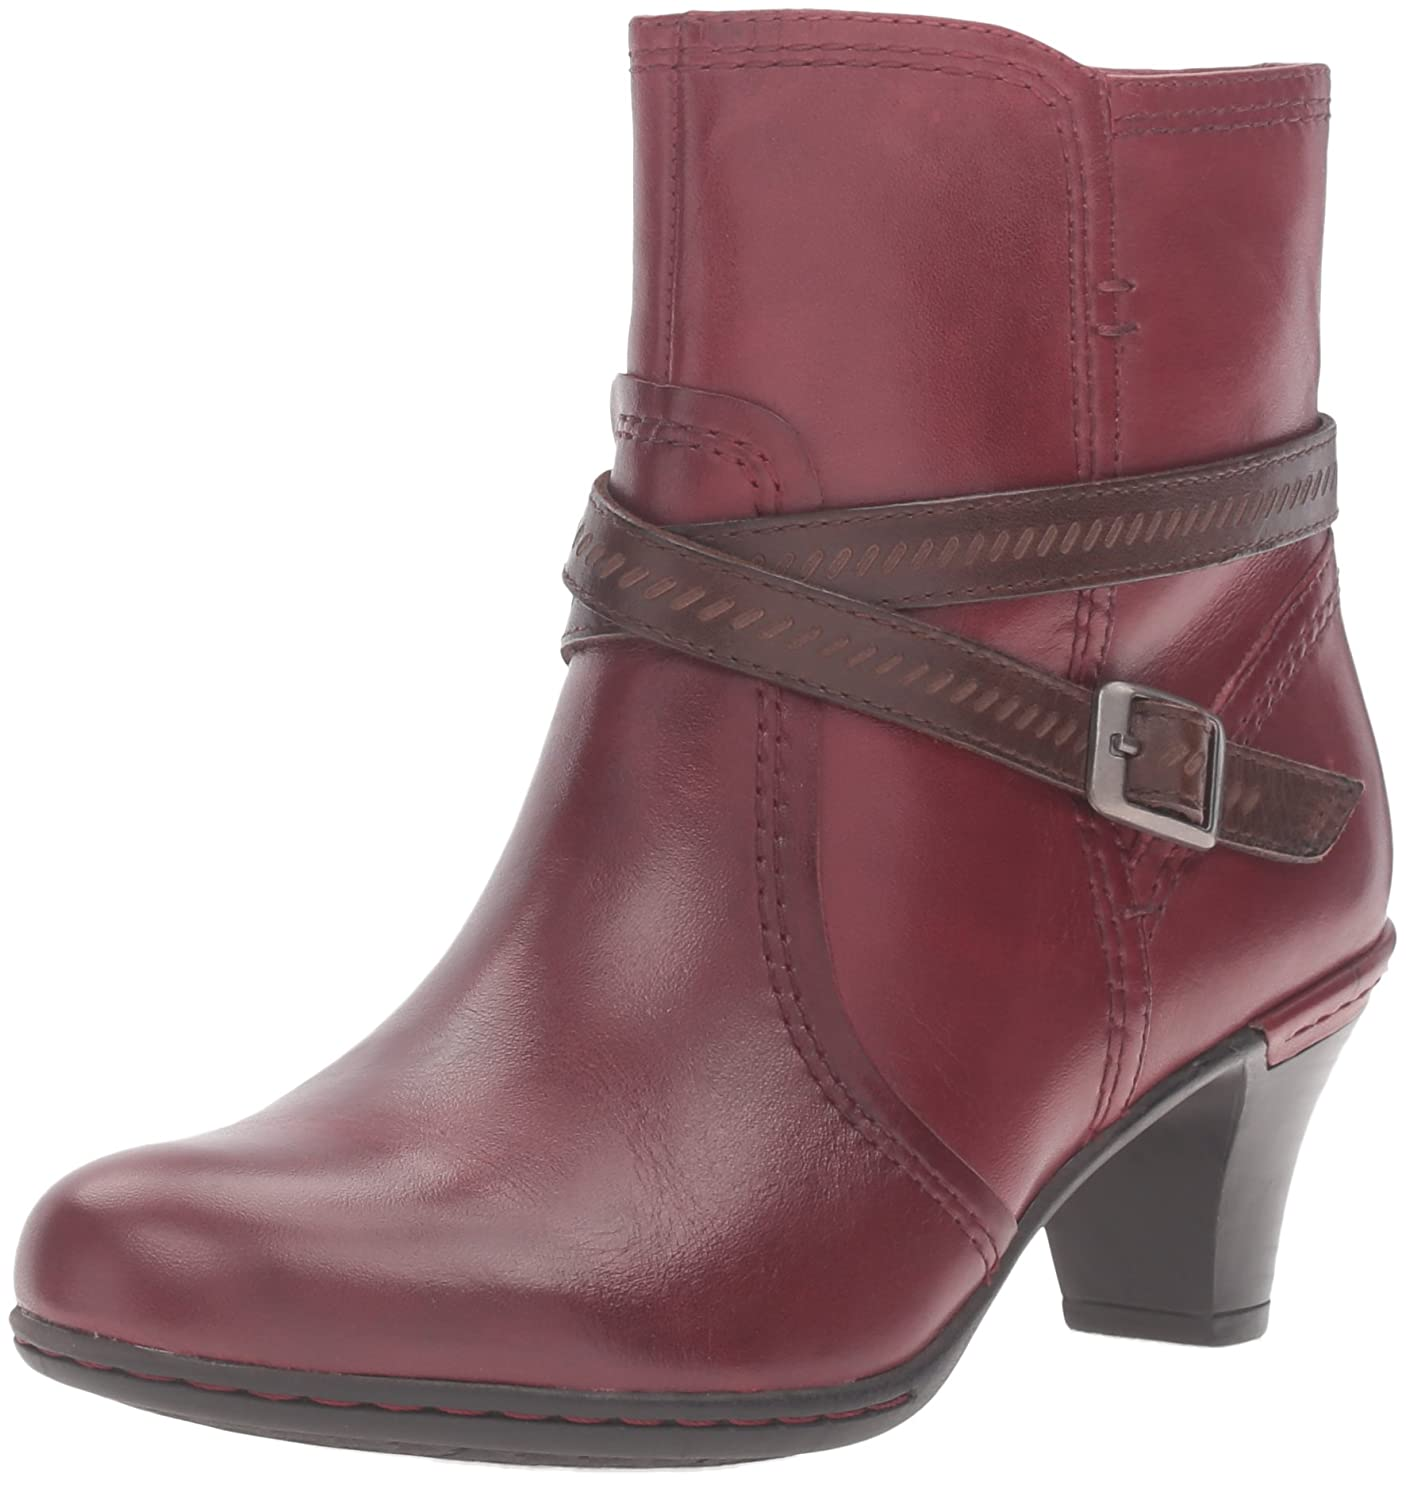 Rockport Women's Cobb Hill Missy Boot B01AK64DIS 7.5 B(M) US|Wine